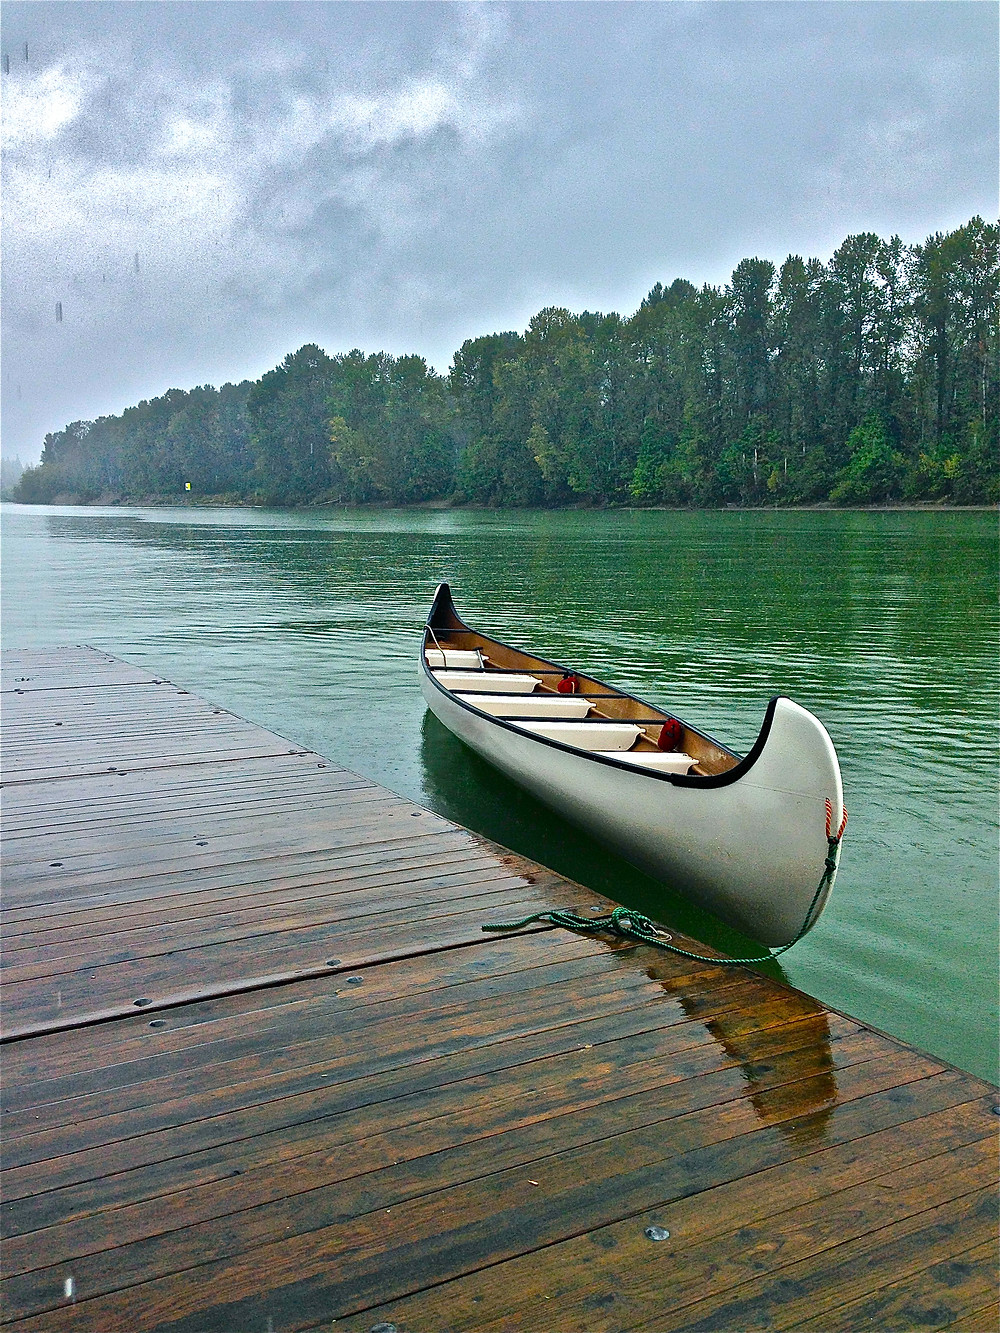 Canoeing in the rain, British Columbia, Canada.